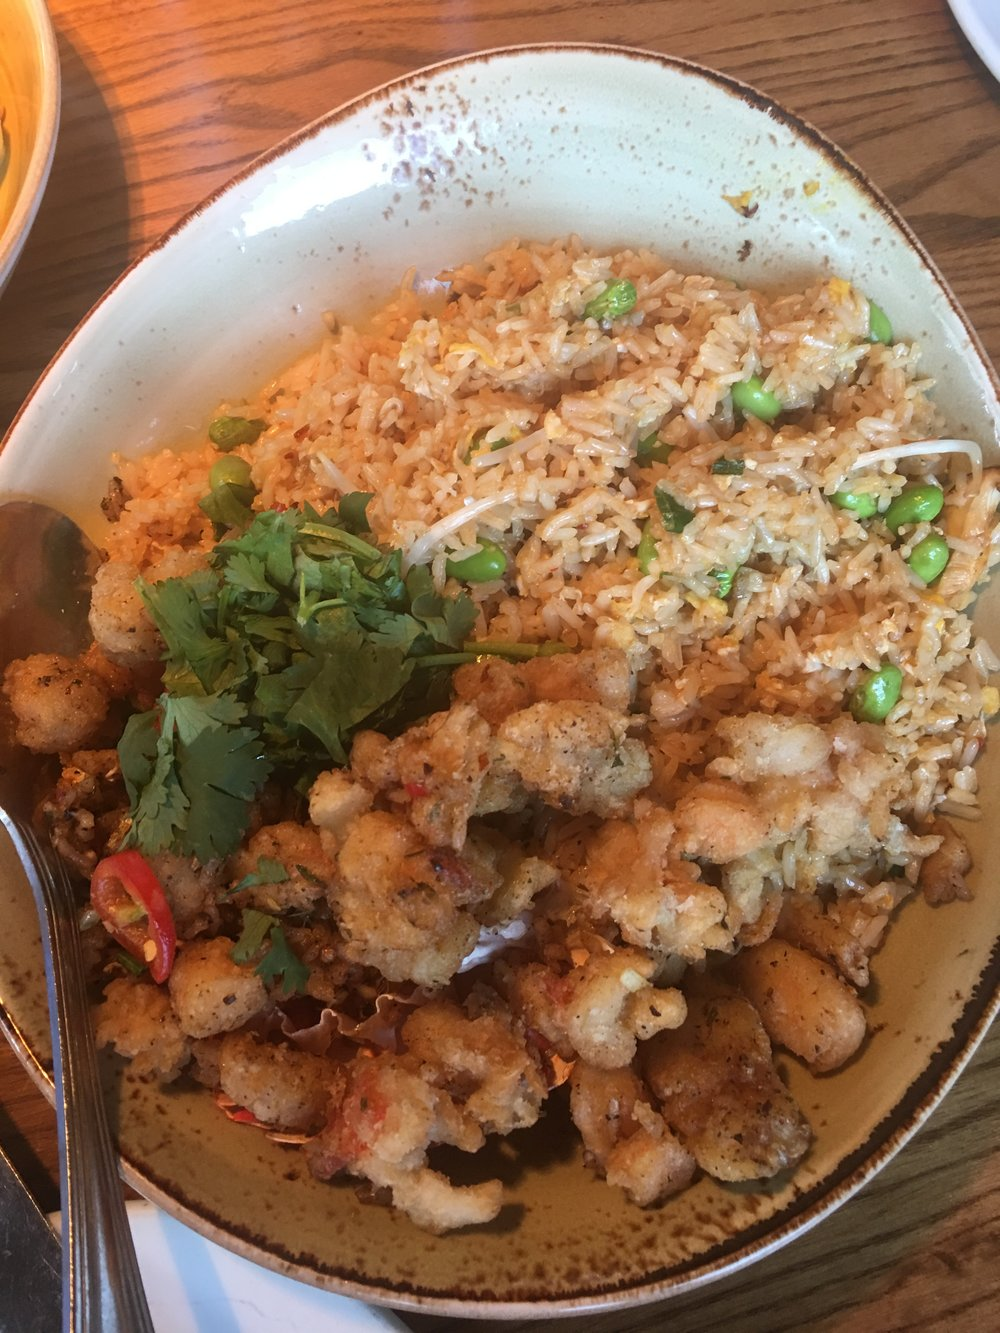 Chang's Lobster & Shrimp Rice :   Crisp pieces of lobster tail, shrimp, fresno peppers, shiitakes, egg